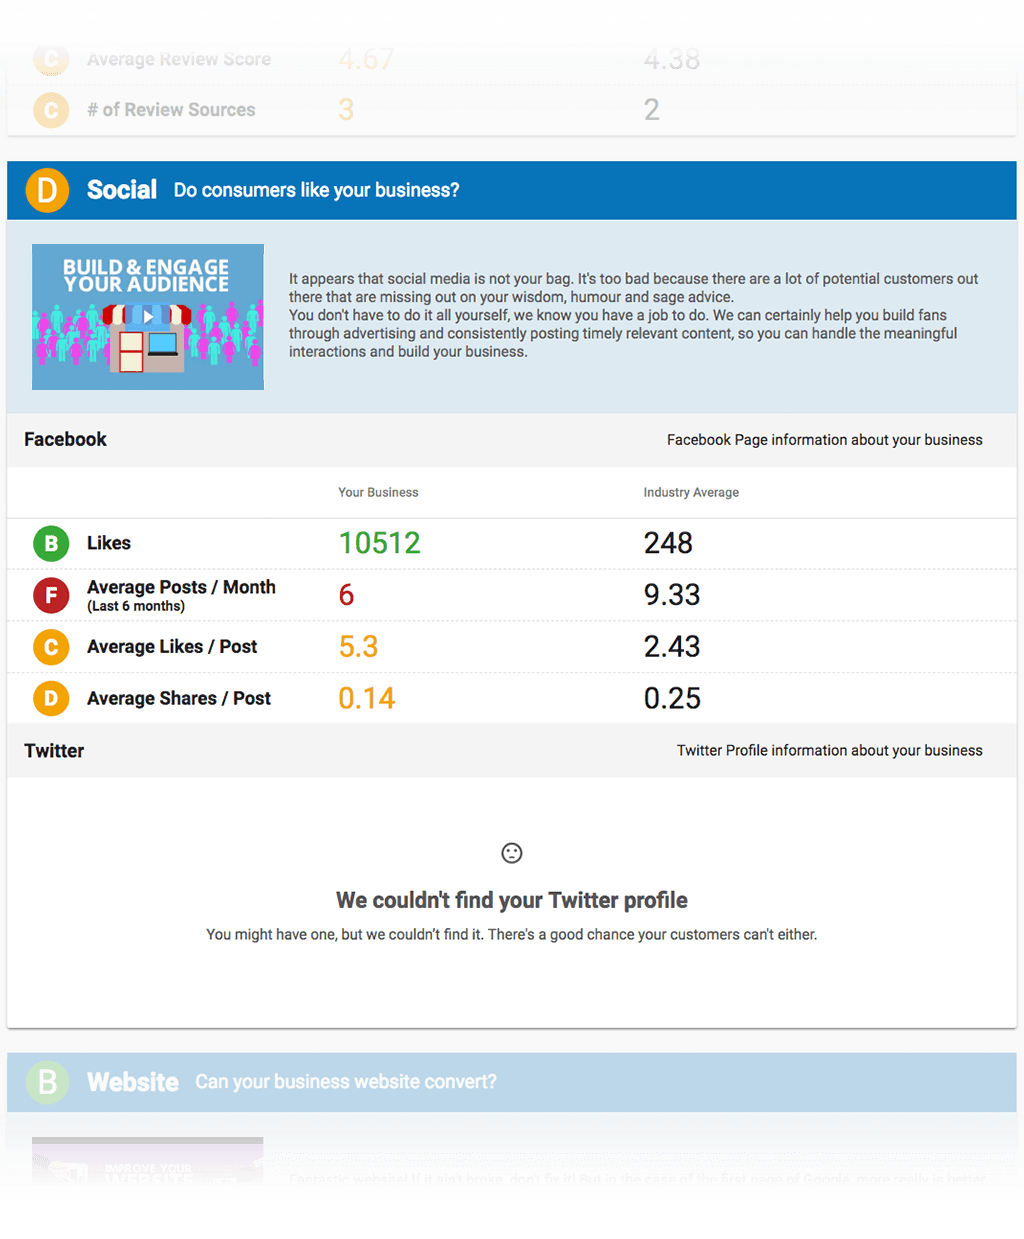 this digital marketing report analyzses your social media